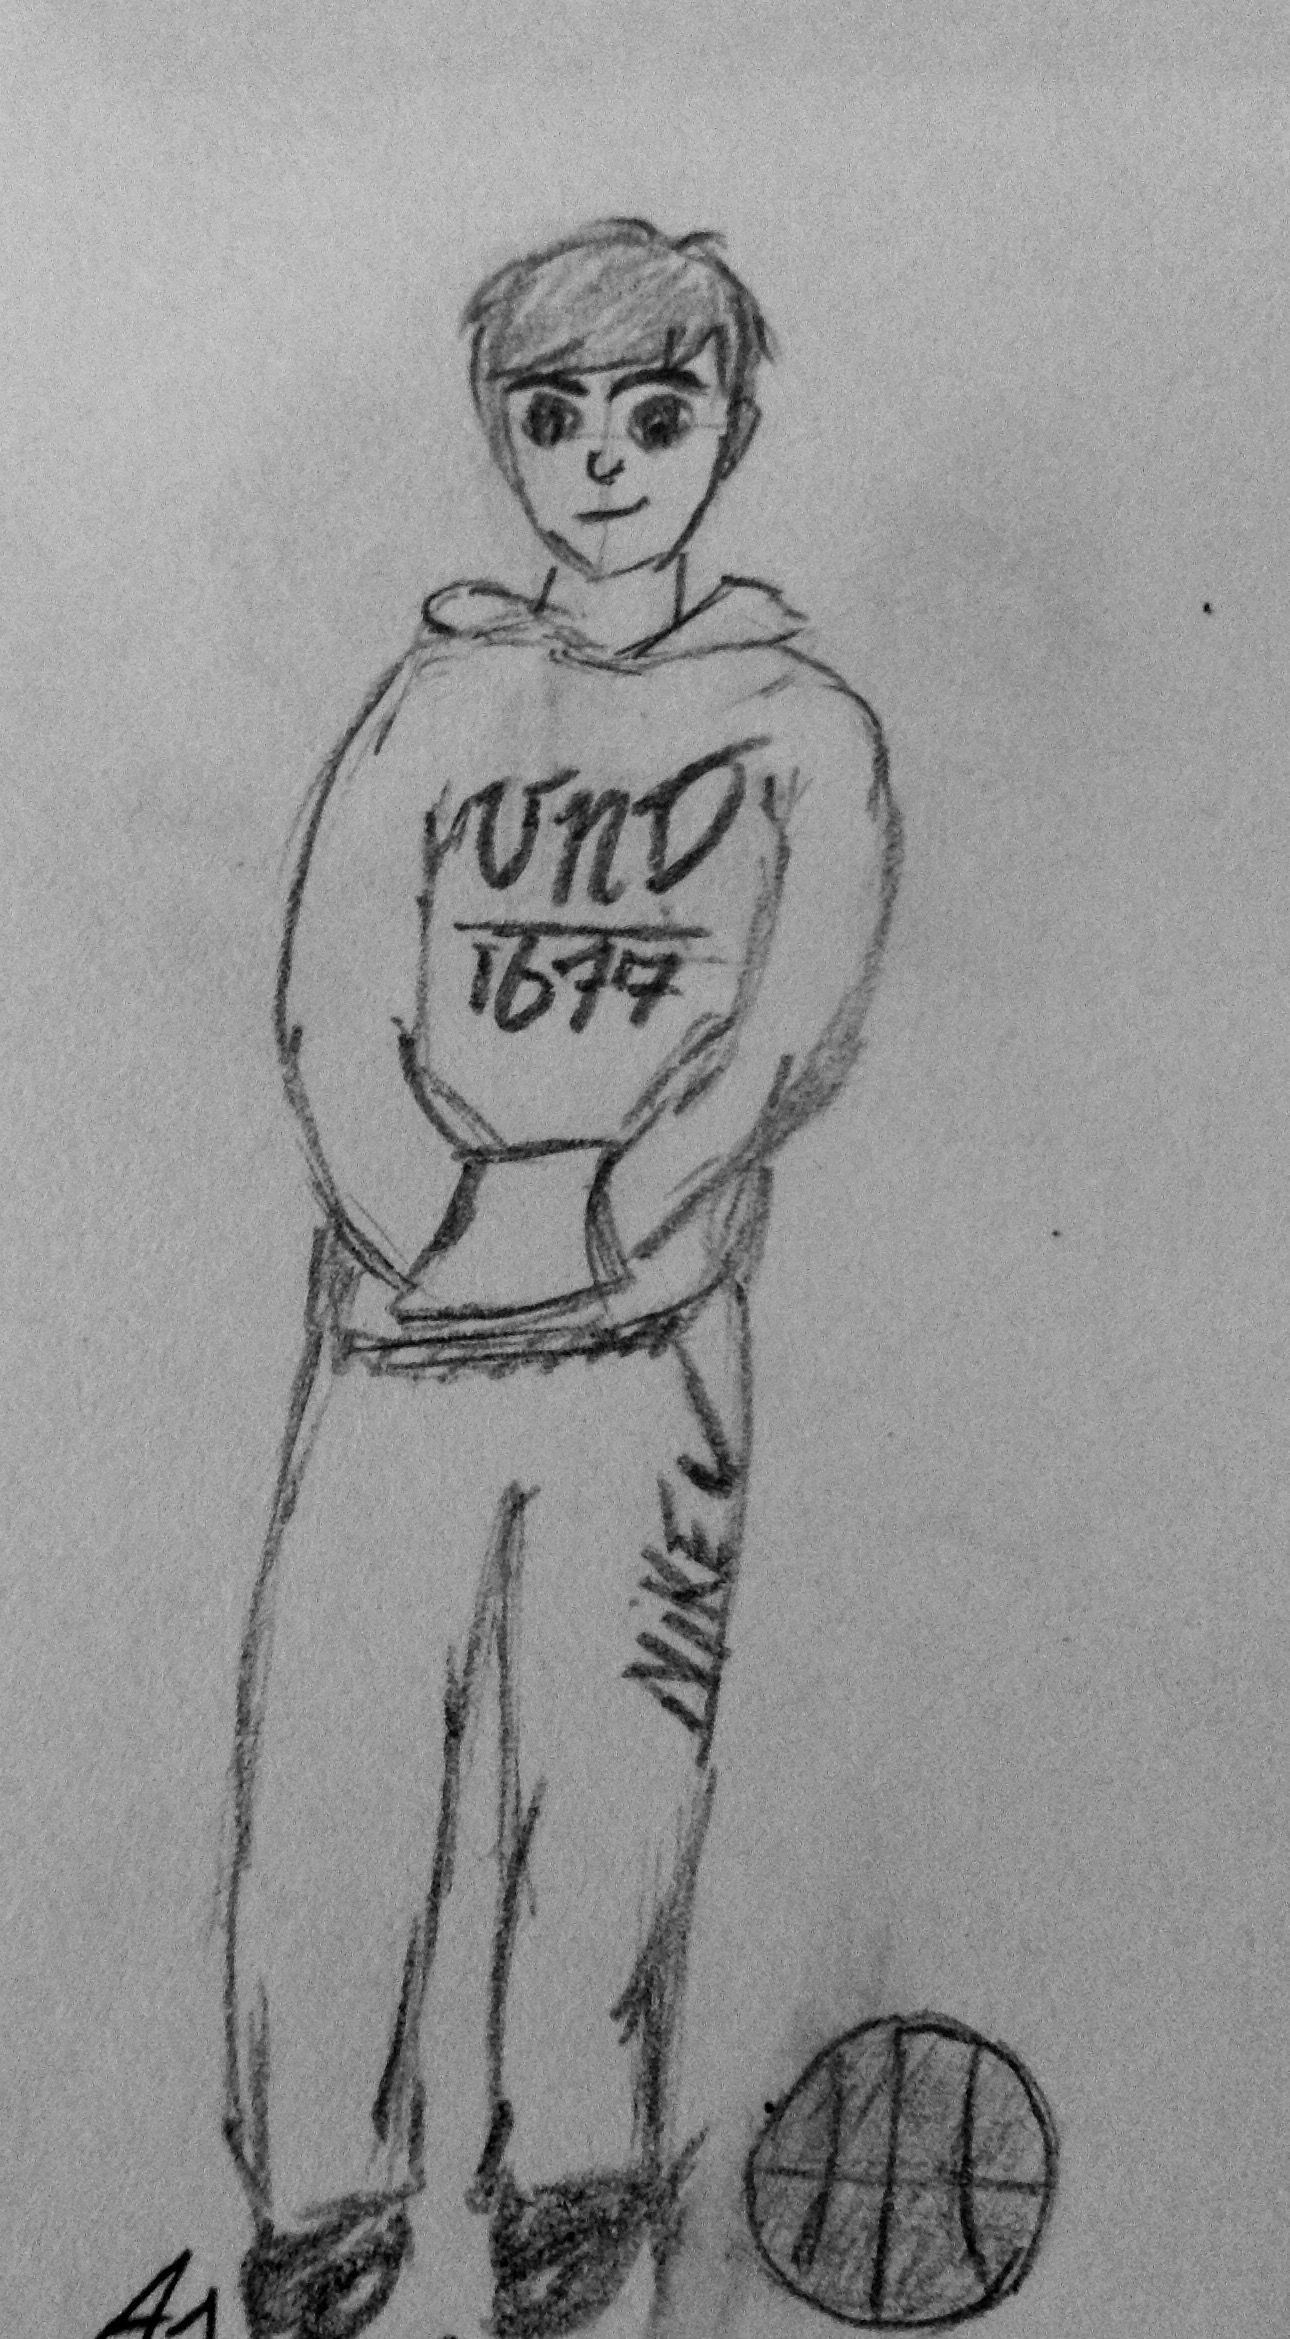 Sketch drawing boy teenager hoodie basketball doodle pencil black and white